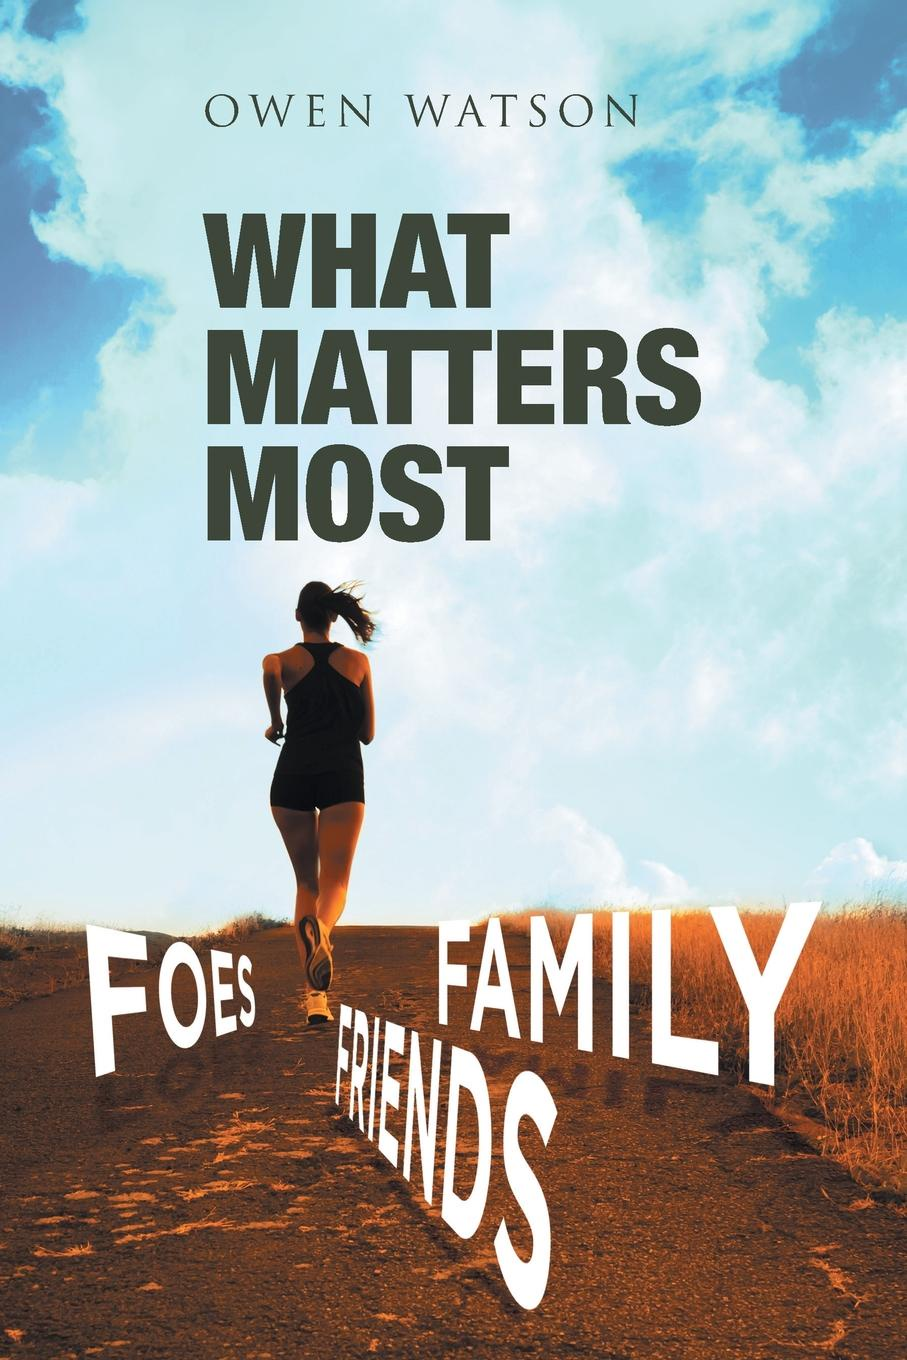 Owen Watson WHAT MATTERS MOST. FAMILY, FRIENDS, AND FOES peter felten the undergraduate experience focusing institutions on what matters most